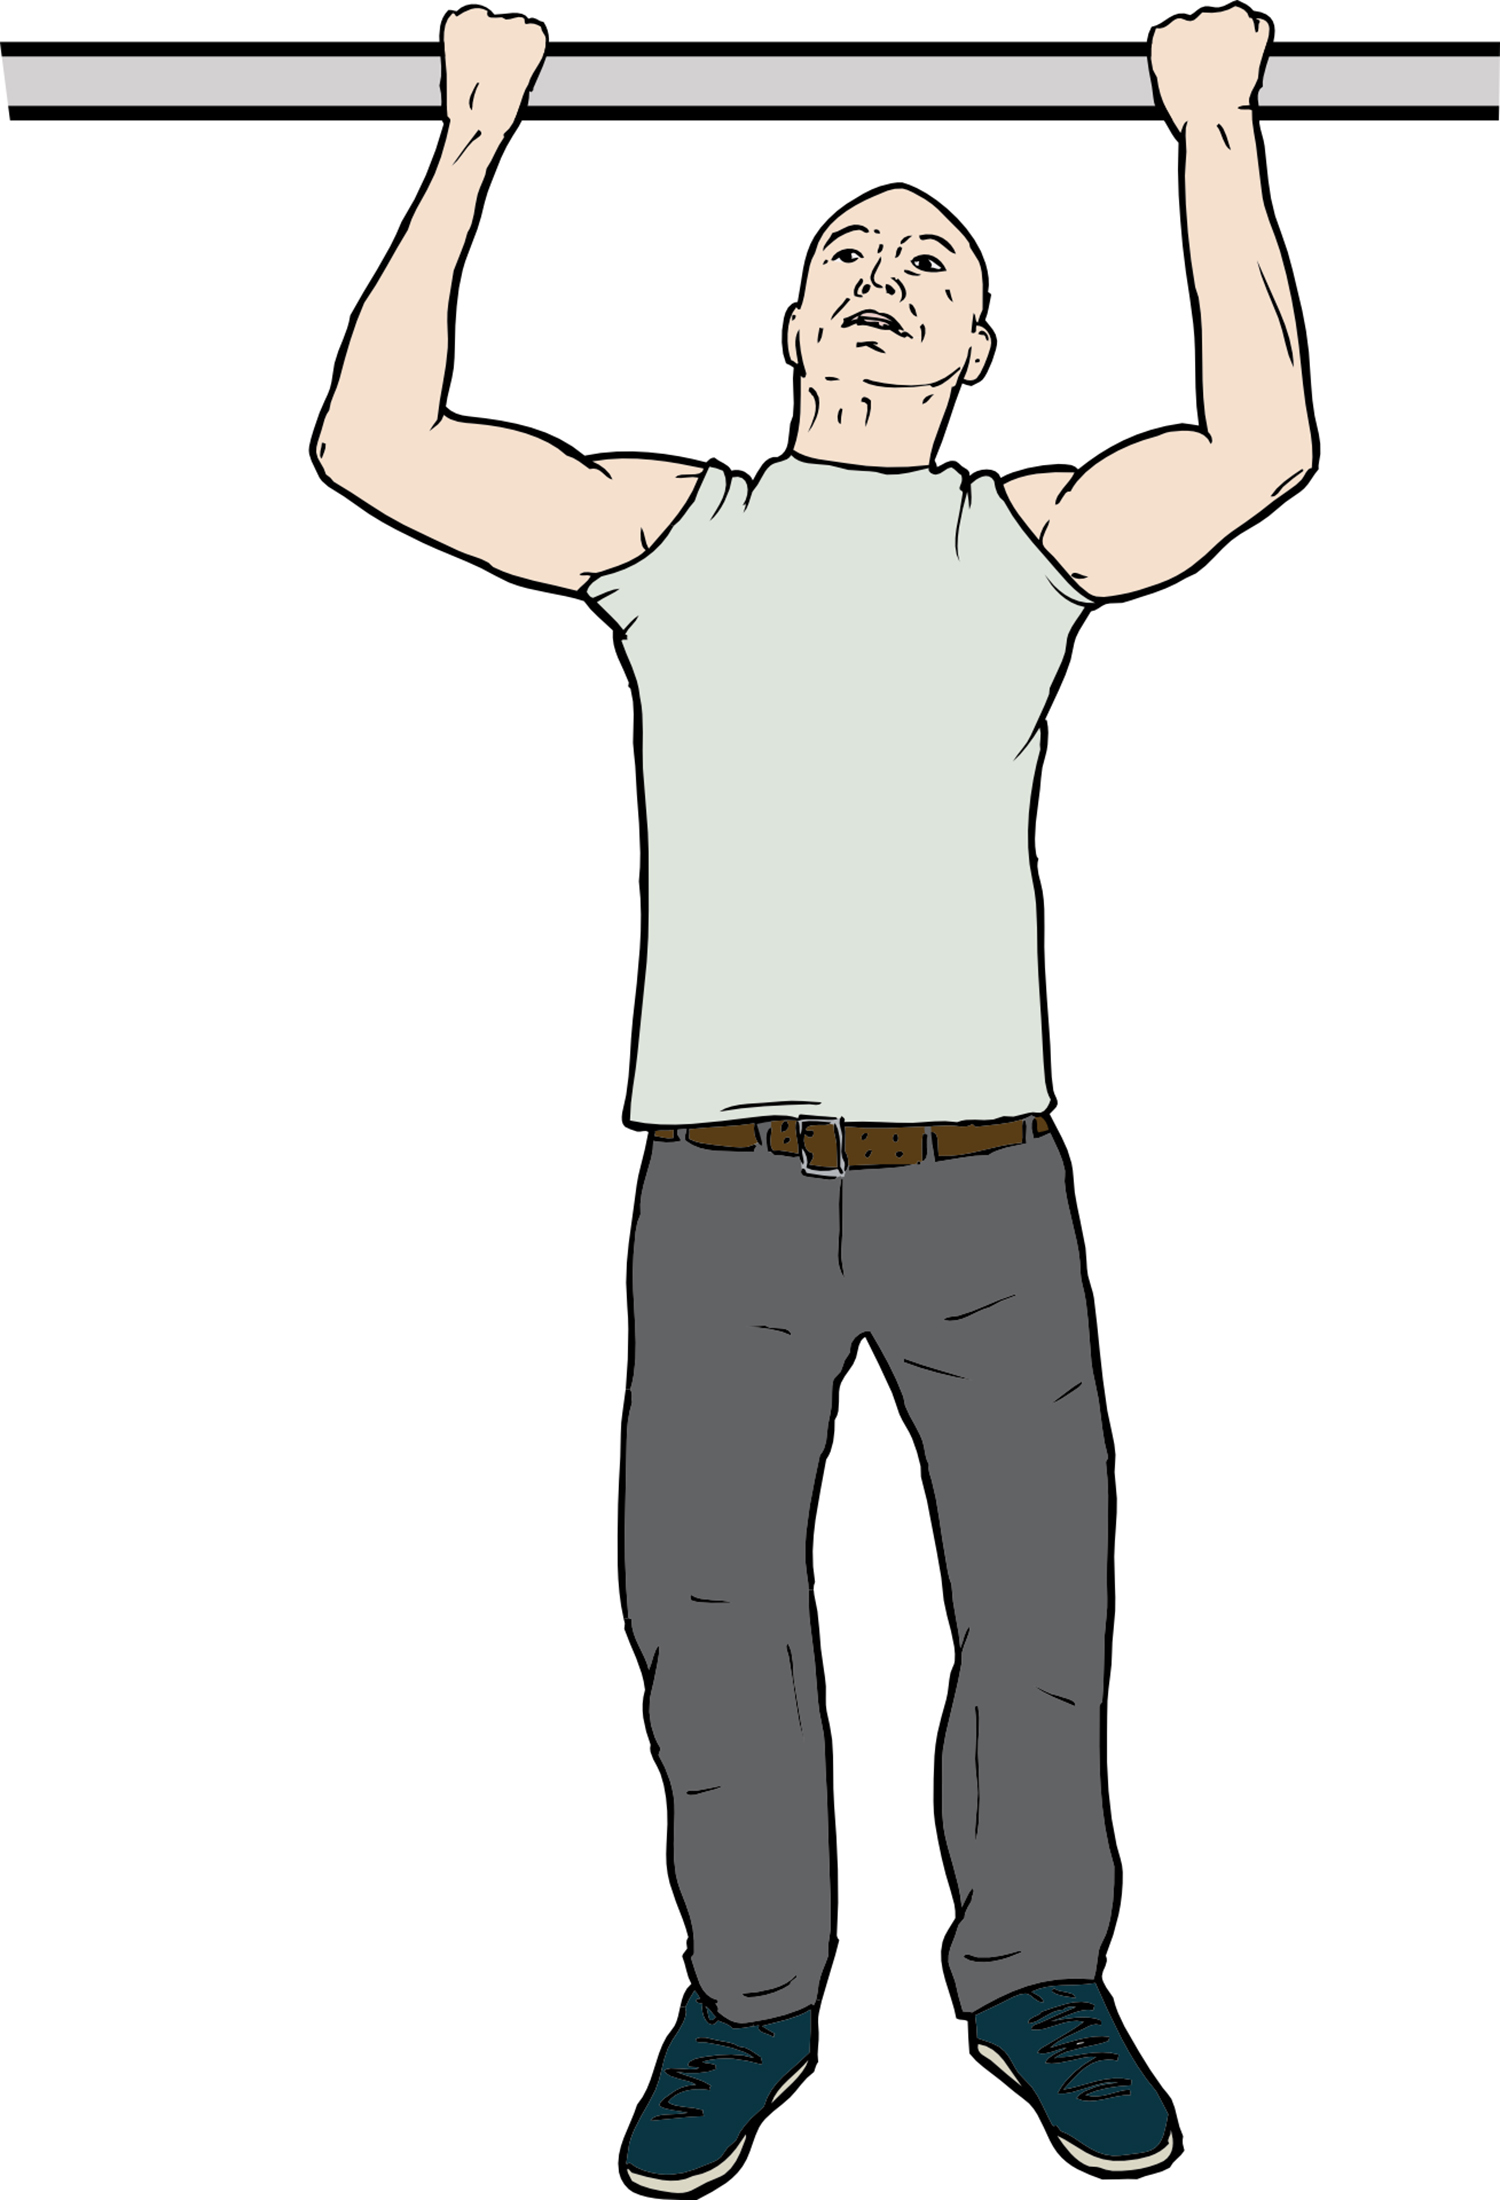 Vector Image of Man Doing Pull Ups Exercise